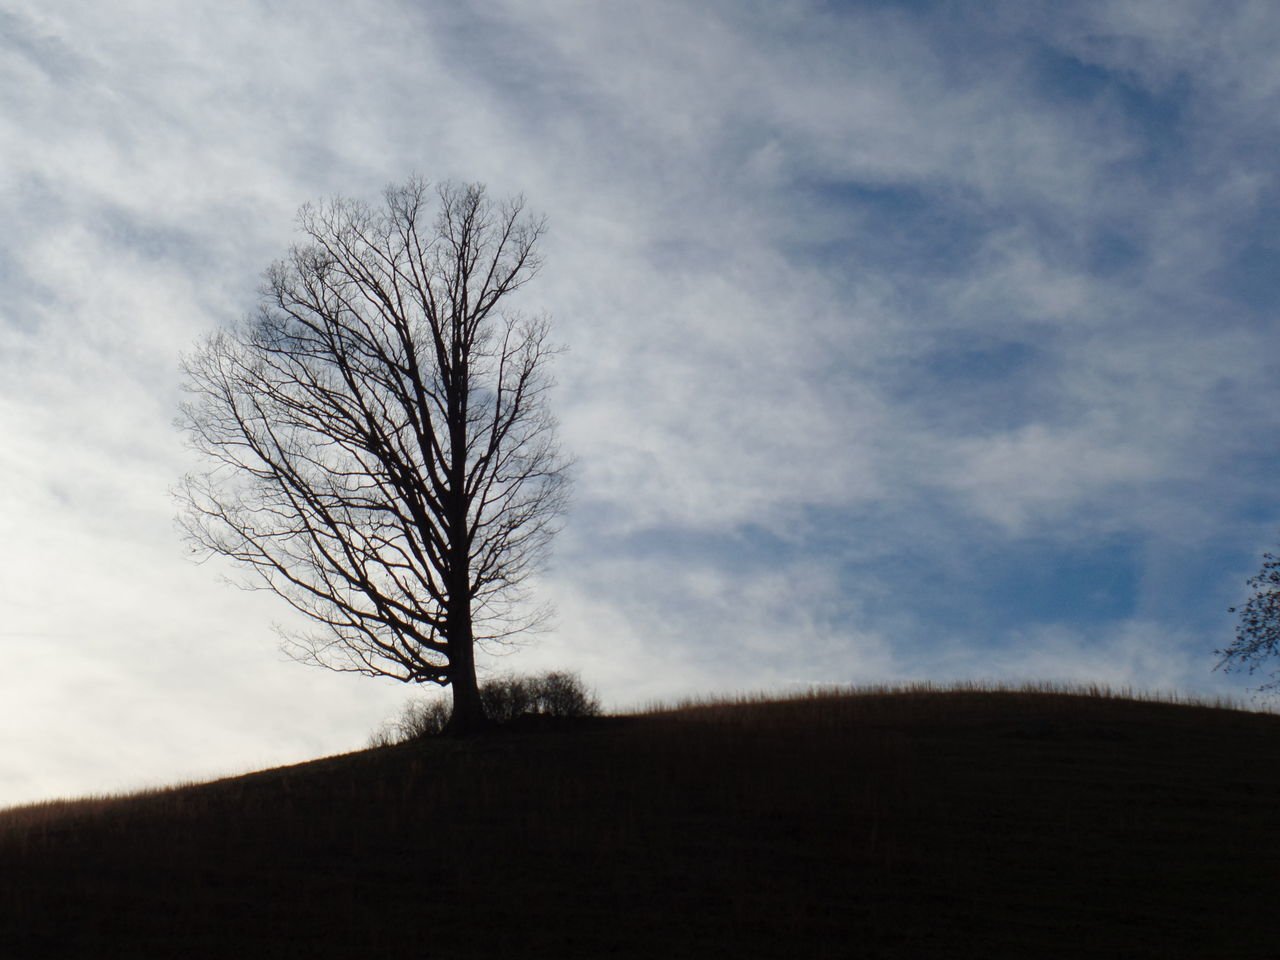 Bare Tree Tree Cloud - Sky Sky Nature Silhouette No People Branch Outdoors Day Single Tree Tranquil Scene Nature Beauty In Nature